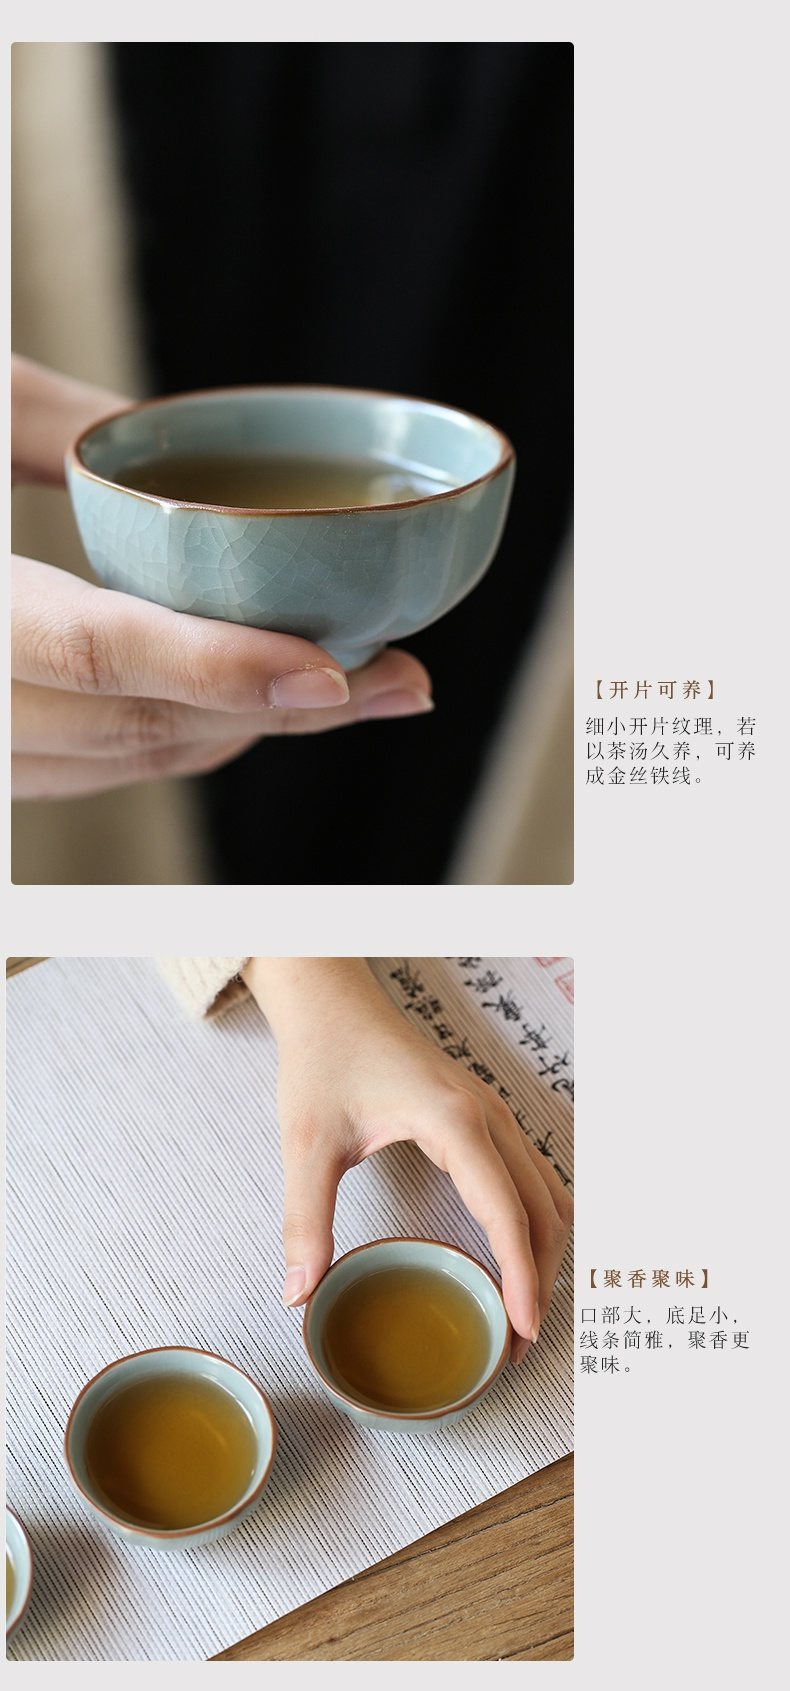 . Poly real boutique scene. Cup your up puer tea masters Cup sample tea Cup of jingdezhen ceramic kung fu tea Cup